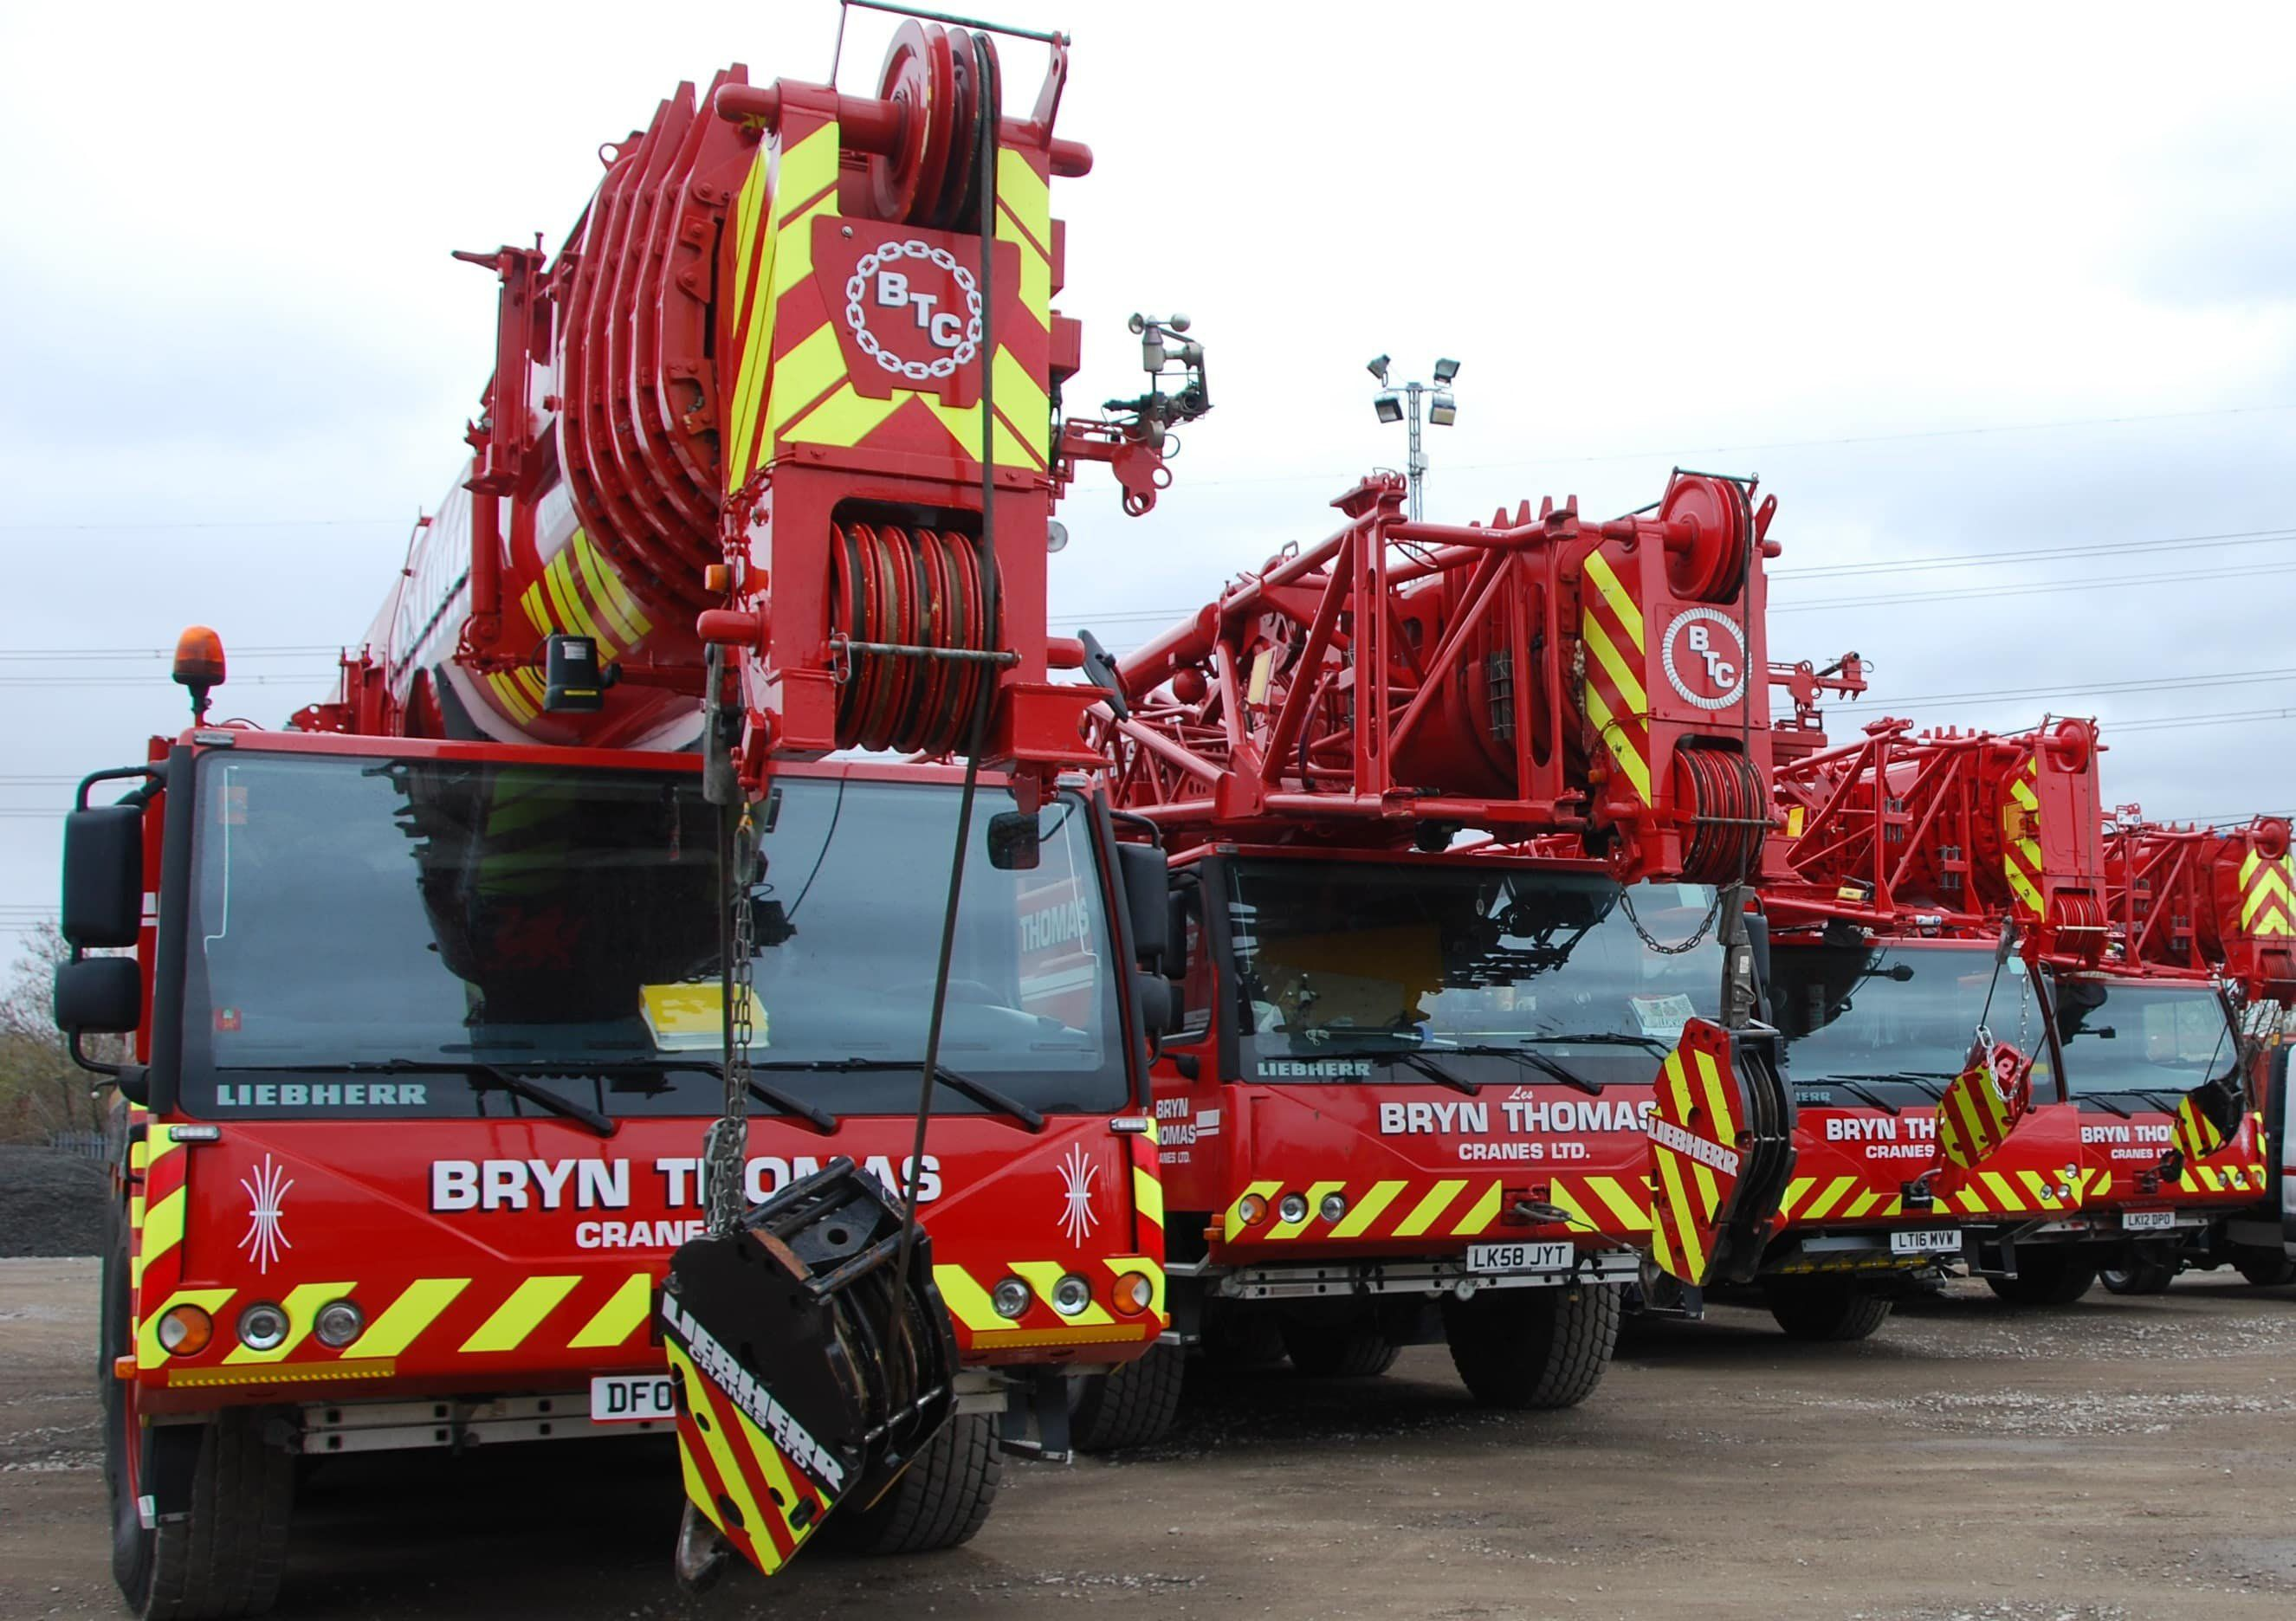 Fleet at Bryn Thomas Cranes